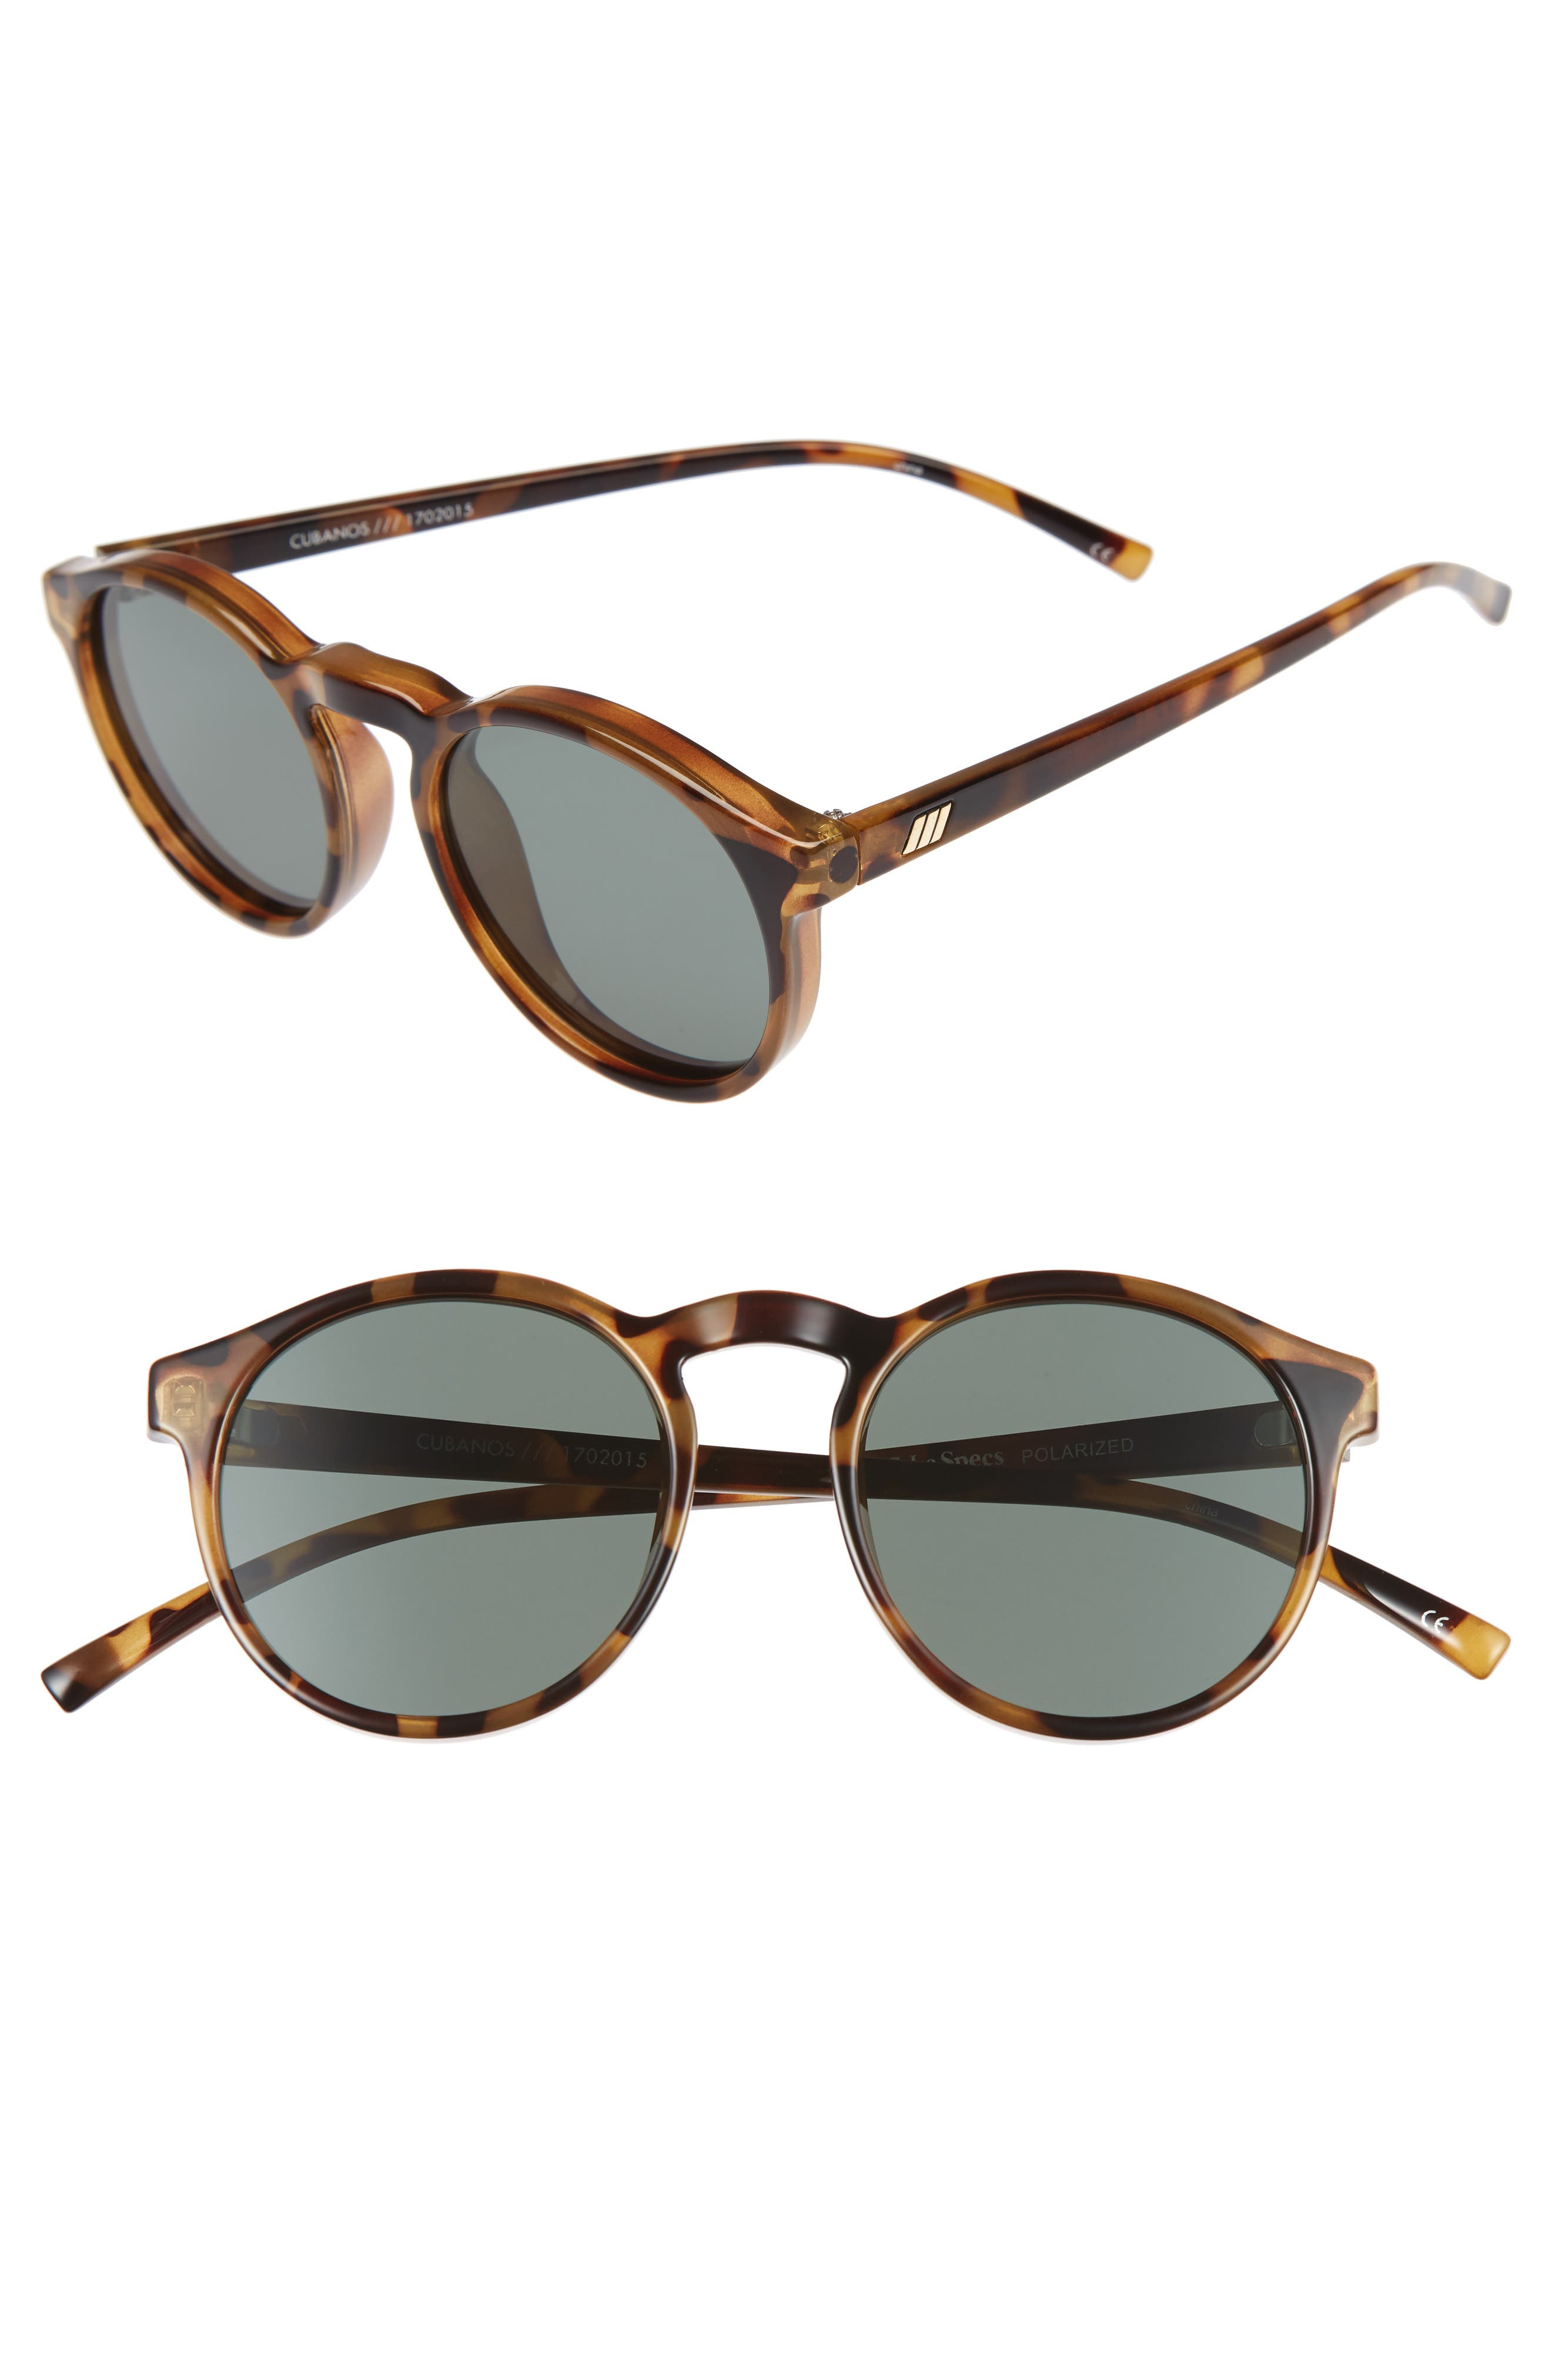 Cubanos 47mm Round Sunglasses,                         Main,                         color, Milky Tortoise